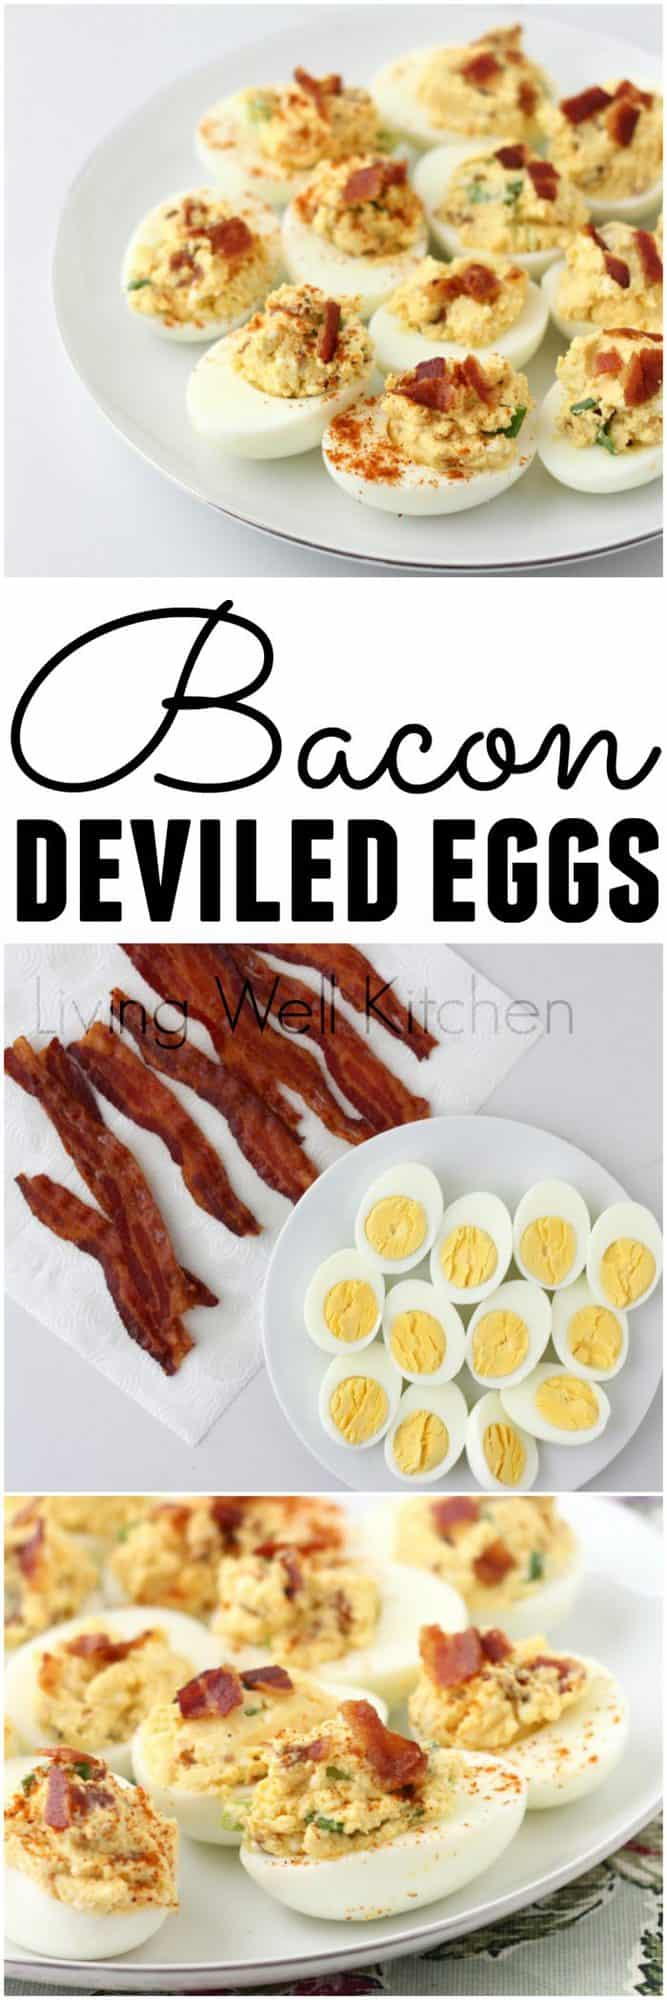 Combine two of the best breakfast foods ever for this tasty Easter appetizer. But this Bacon Deviled Egg recipe isn't just for the springtime. They're a great make ahead appetizer to bring to parties or a delicious and filling snack.